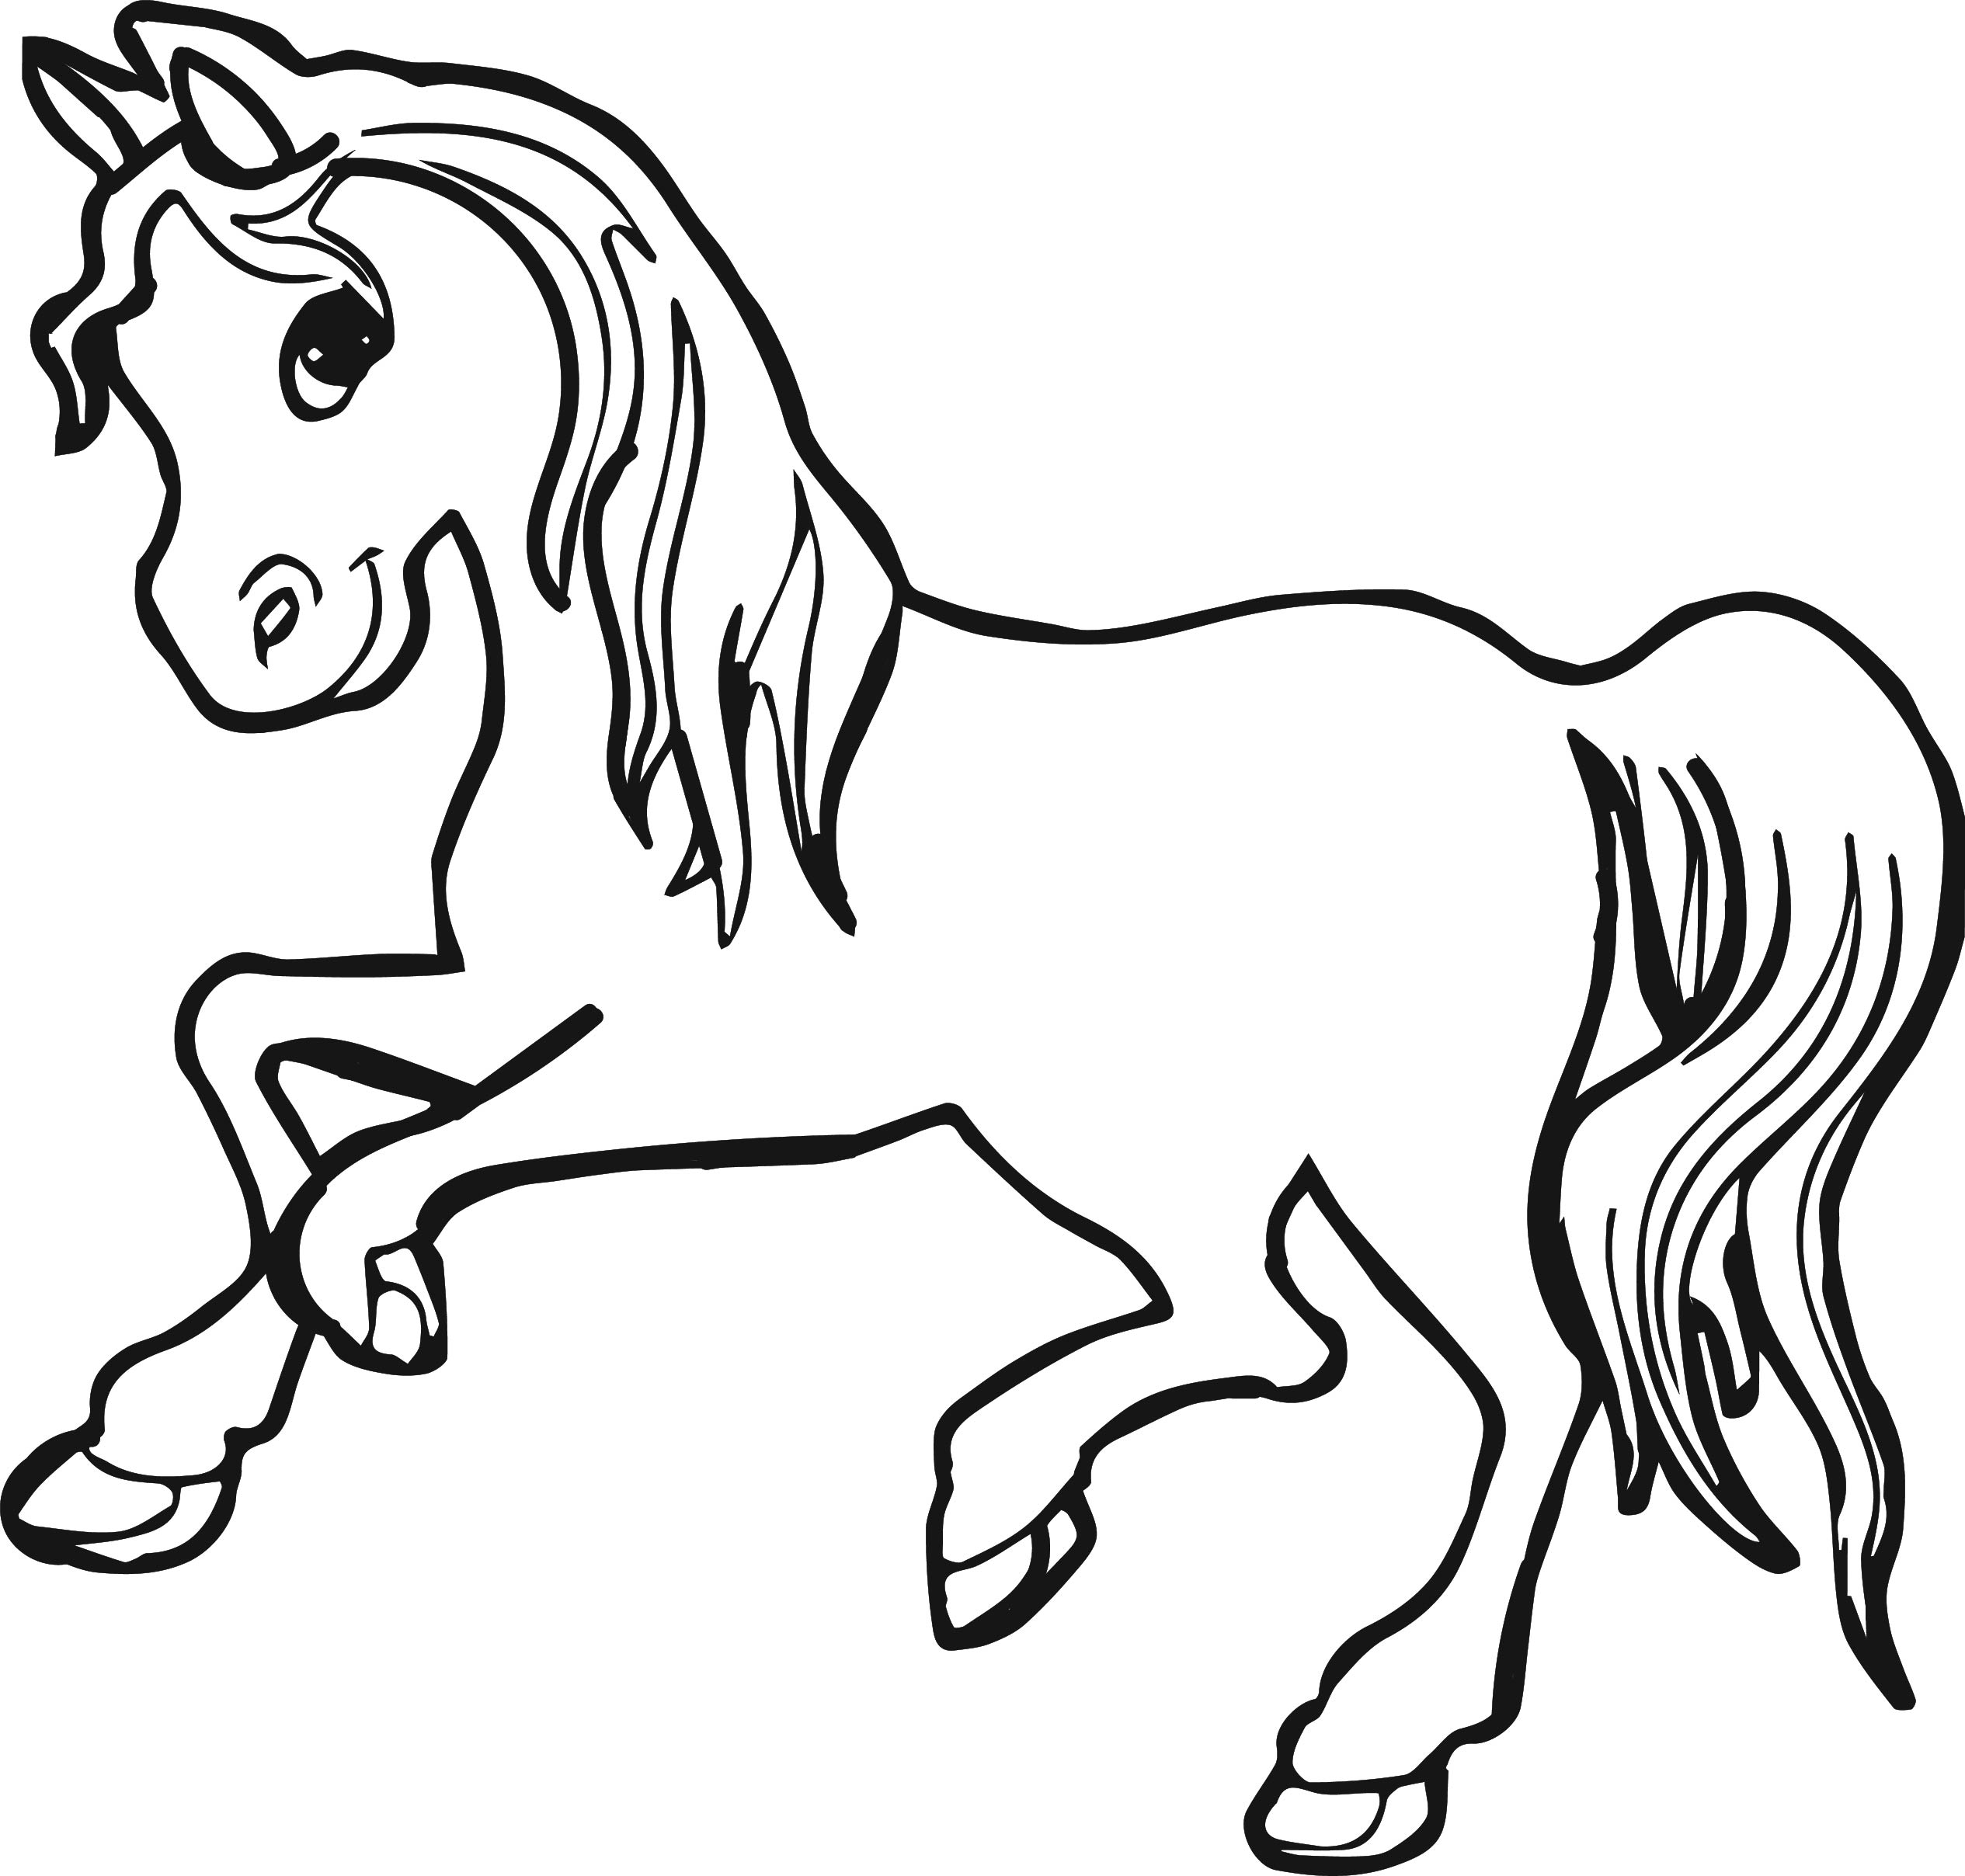 coloring horse kids fun horse coloring pages for your kids printable horse kids coloring